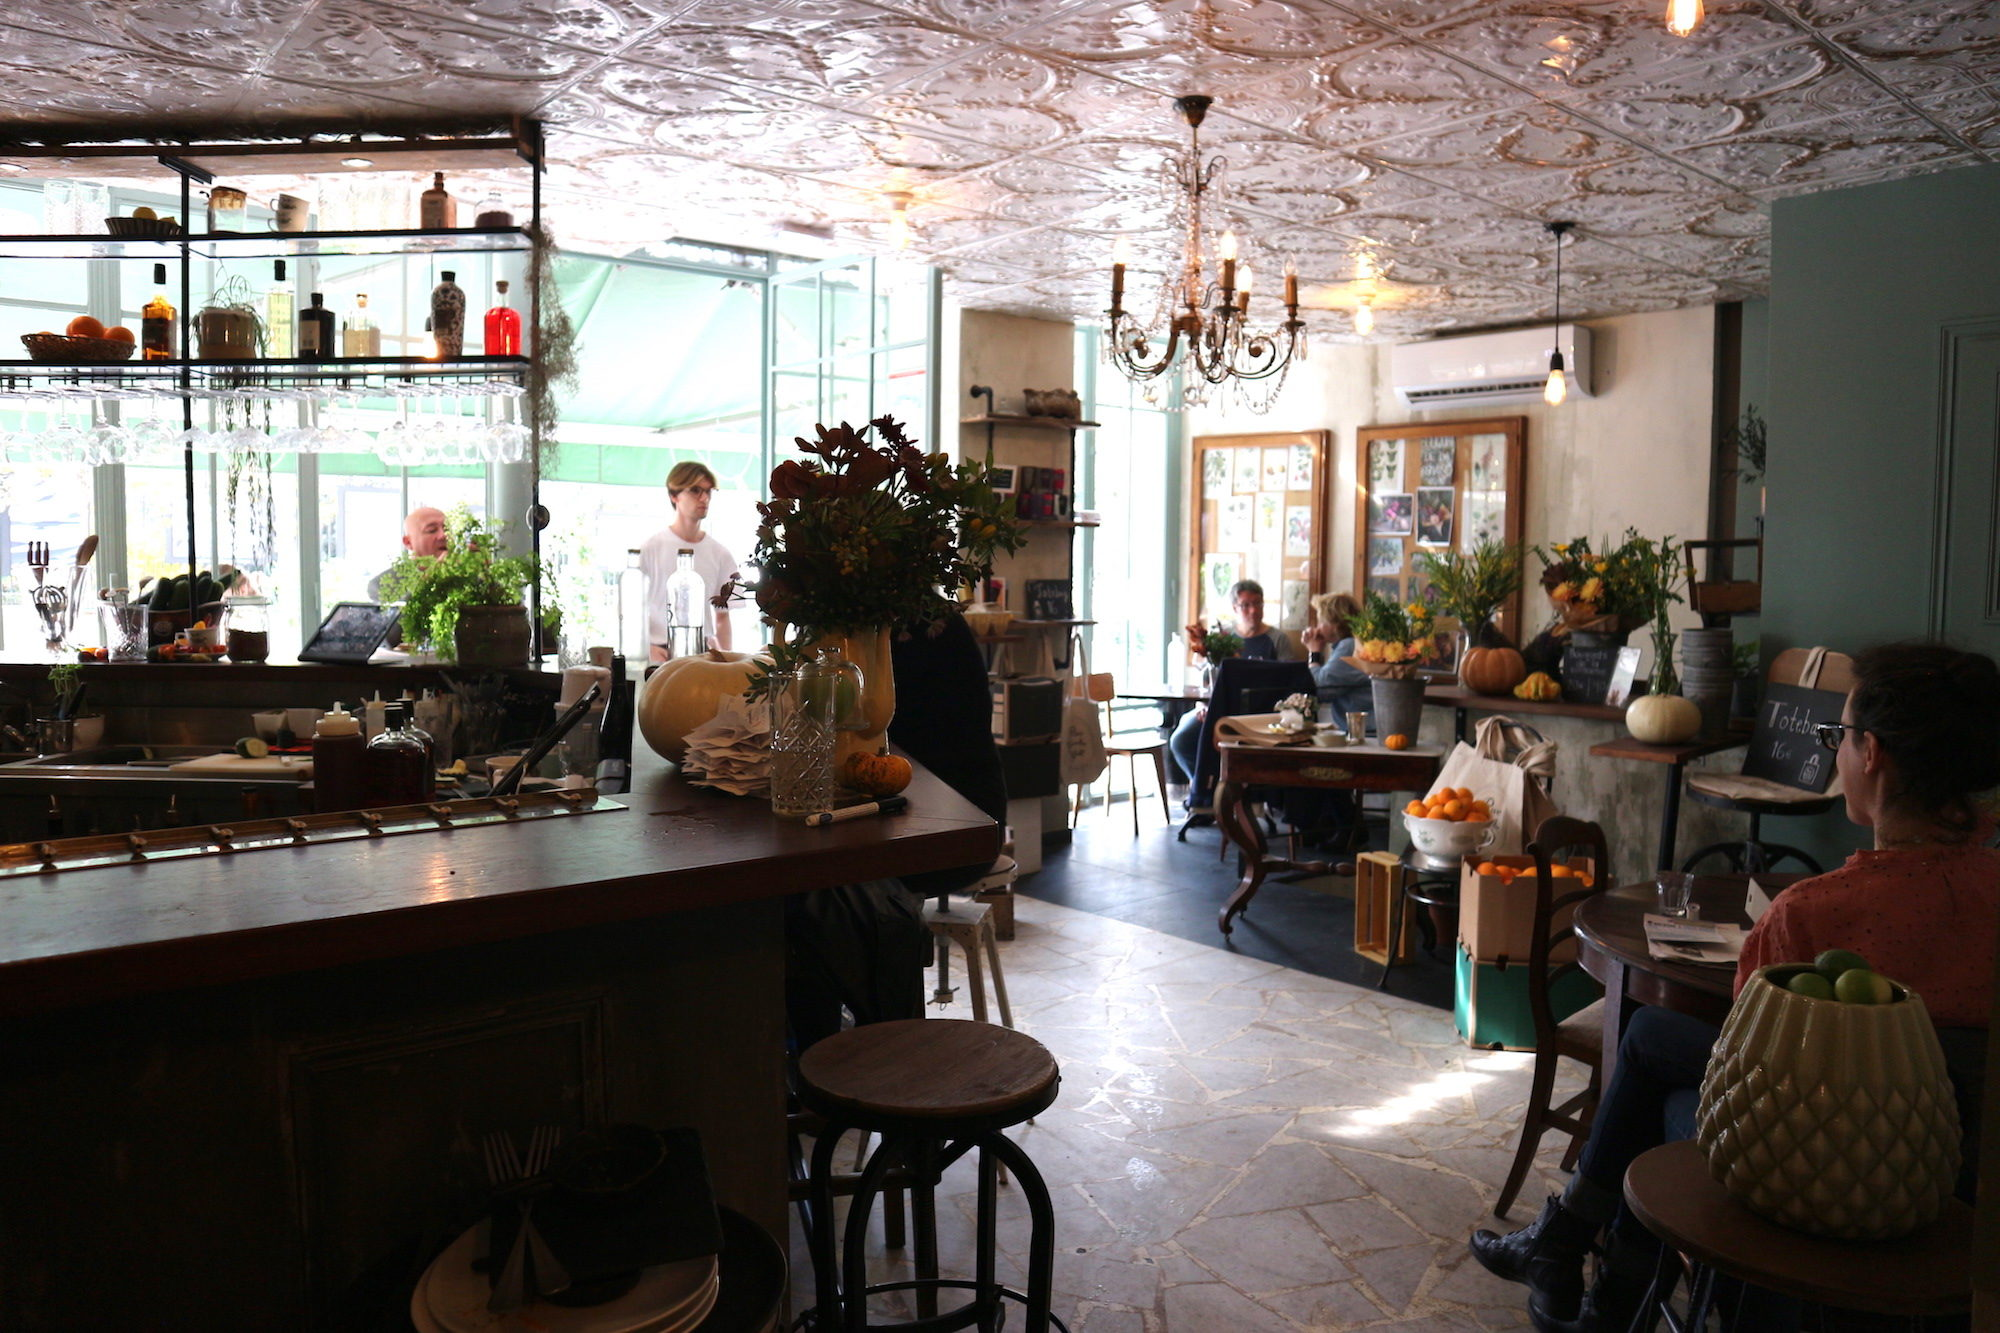 Treize au Jardin coffee shop in Paris, with its rustic interiors teeming with plants and fresh fruit baskets, is our go-to for cake in the 6th district.